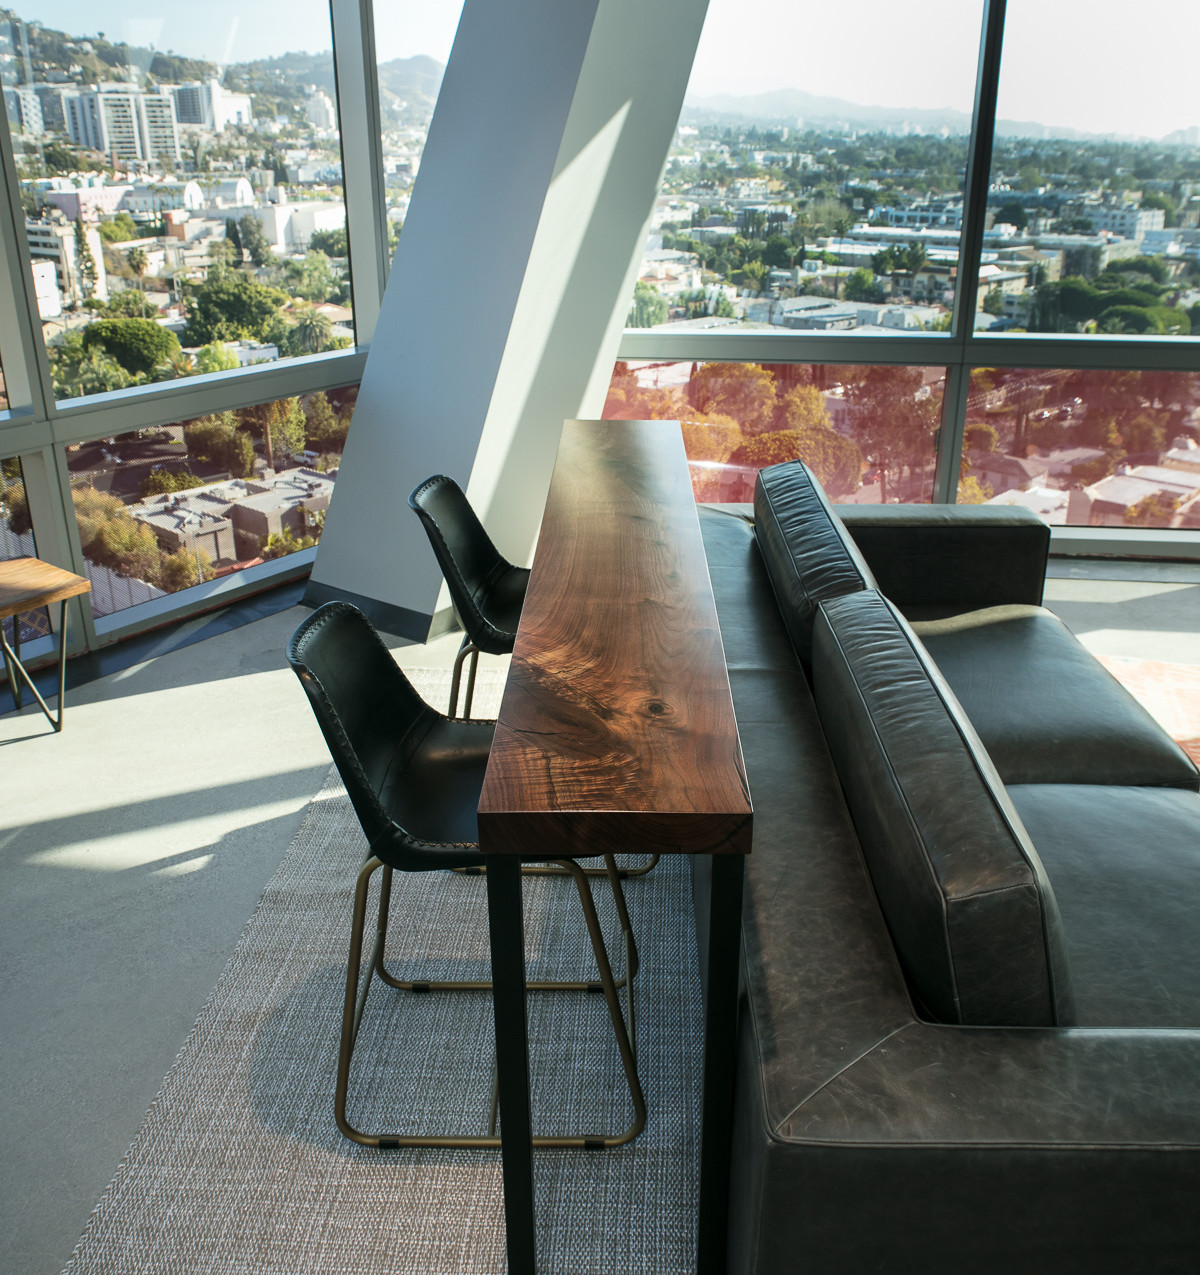 Modern contemporary walnut bar top tables in high rise hollywood office space.